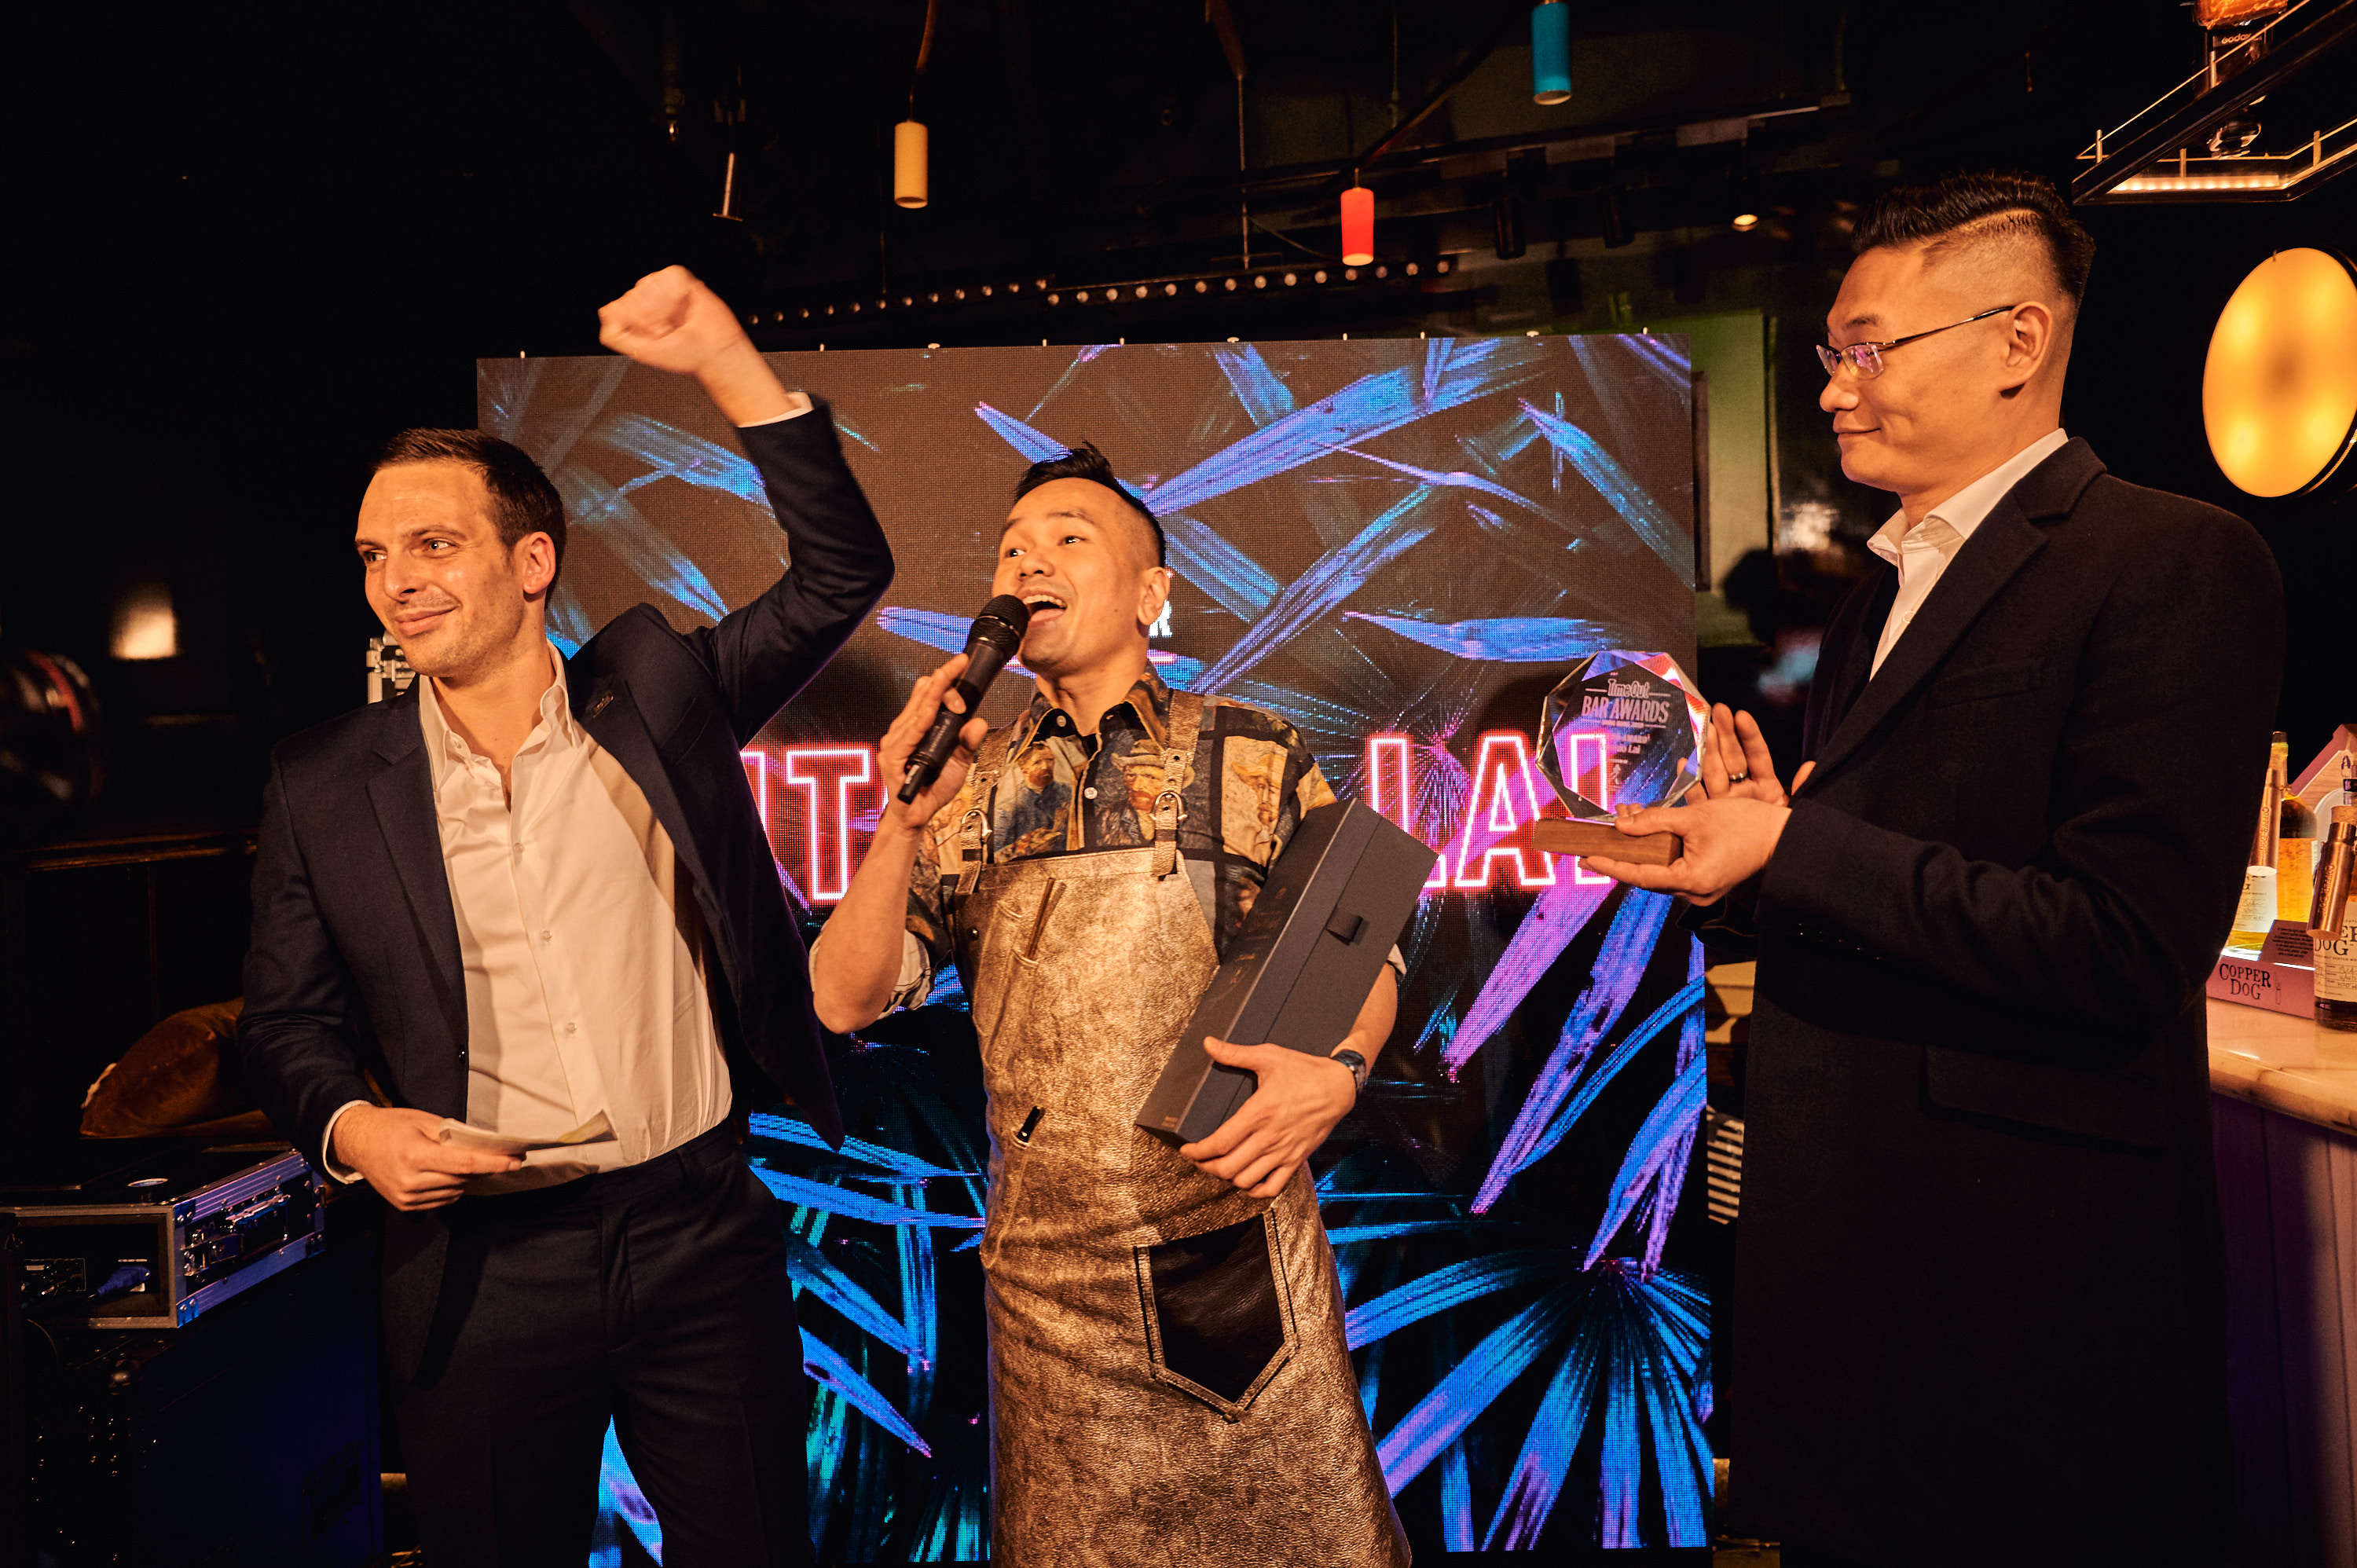 2019 Time Out Hong Kong Bar Awards 得獎名單火熱出爐